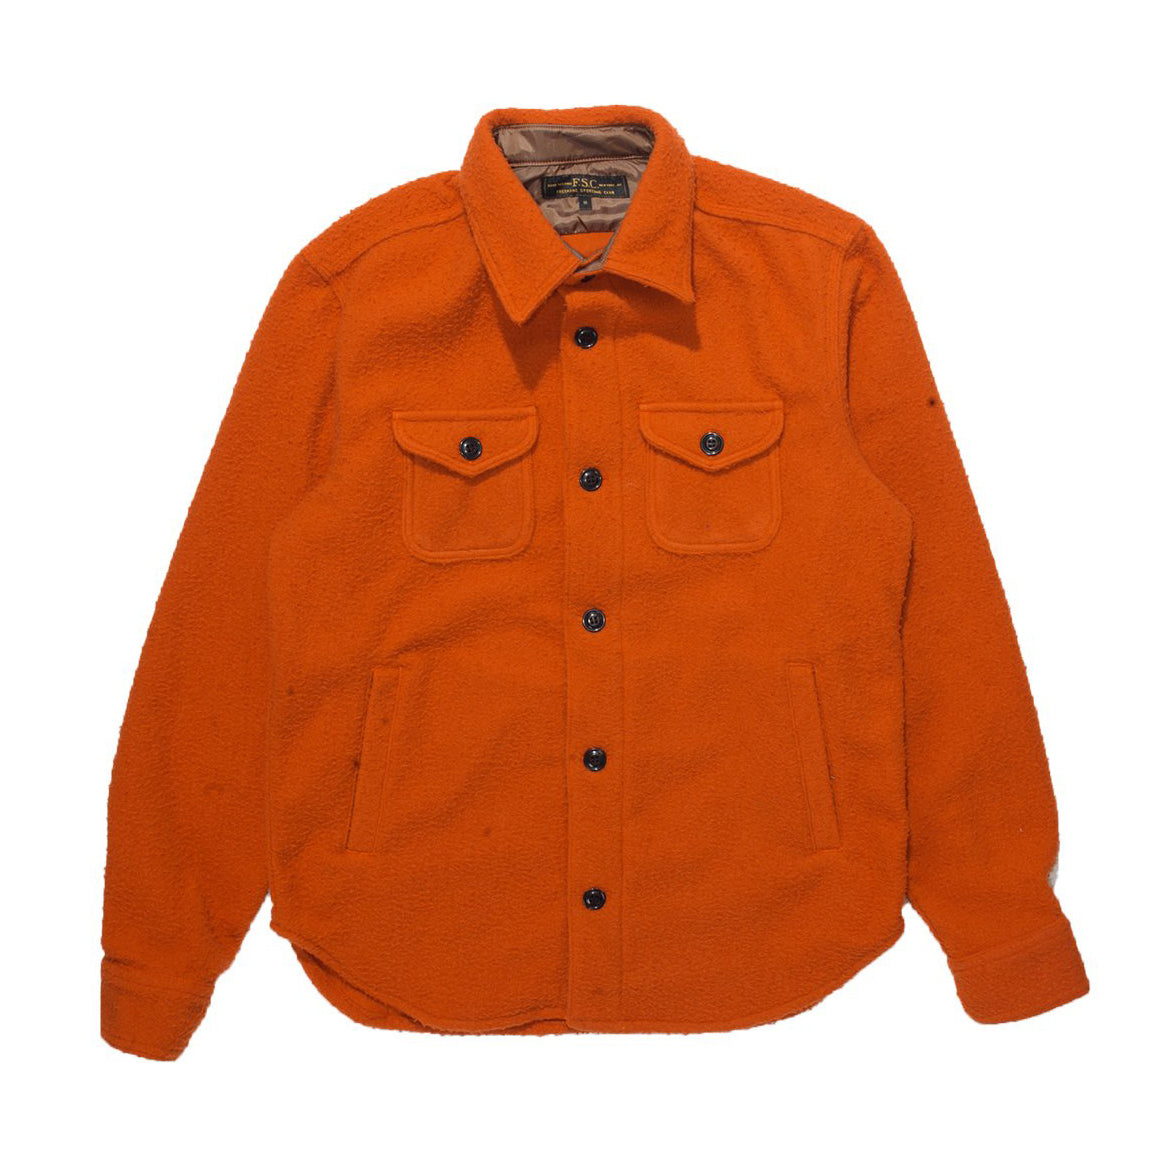 NEP WOOL OVERSHIRT - ORANGE